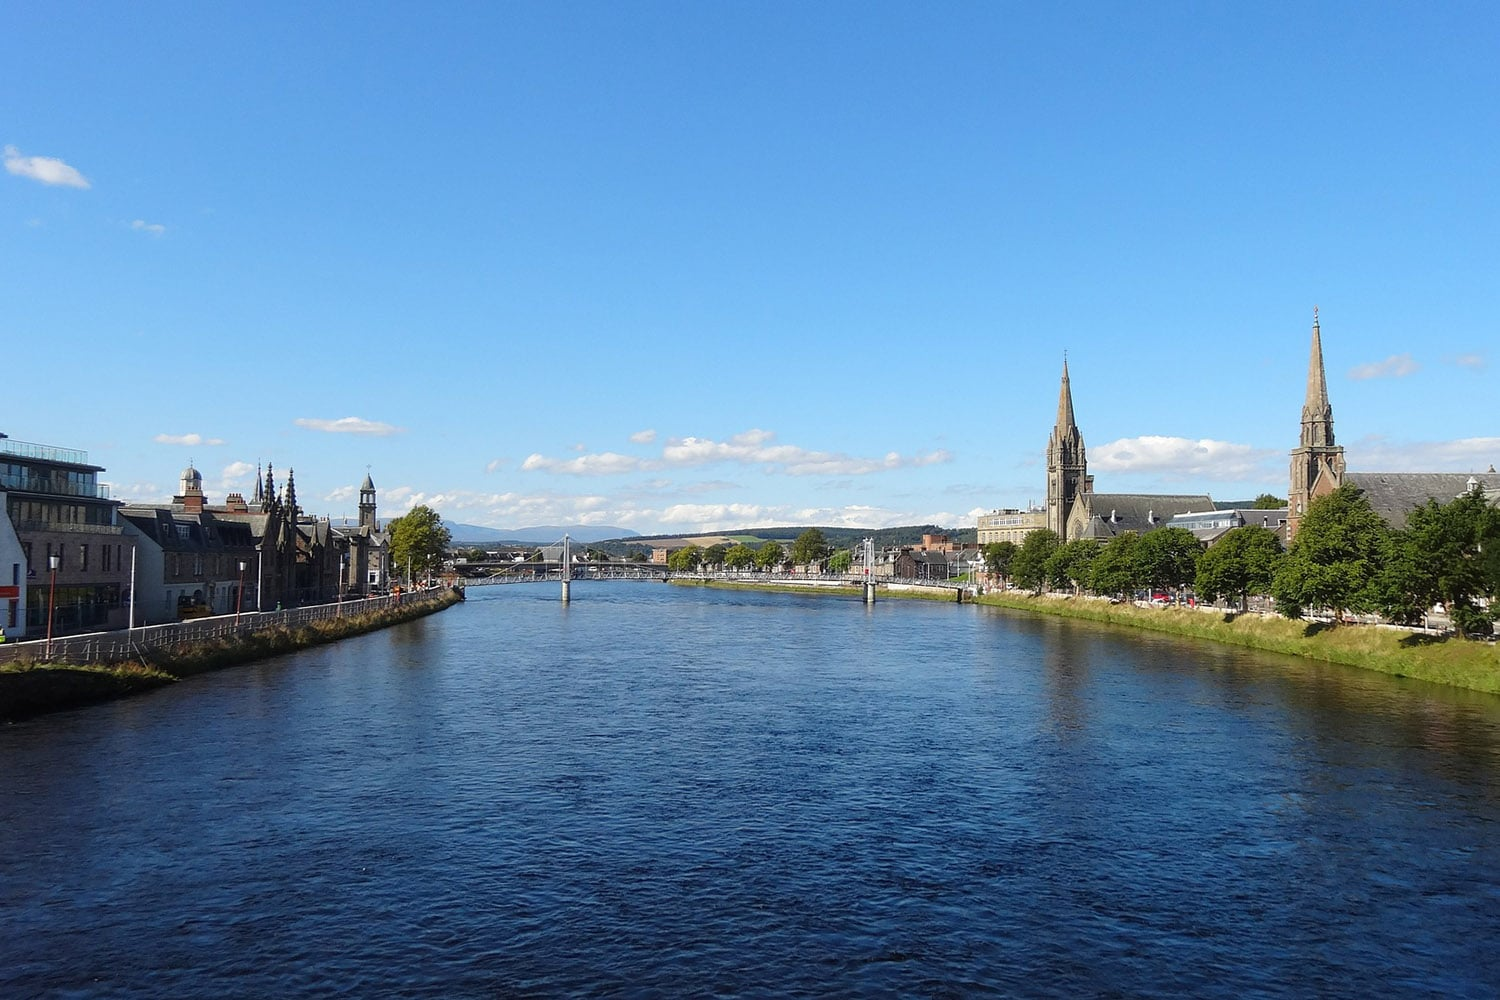 The city of Inverness on Scotland's northeast coast is featured in our two day tour of Scotland - The Adventurer